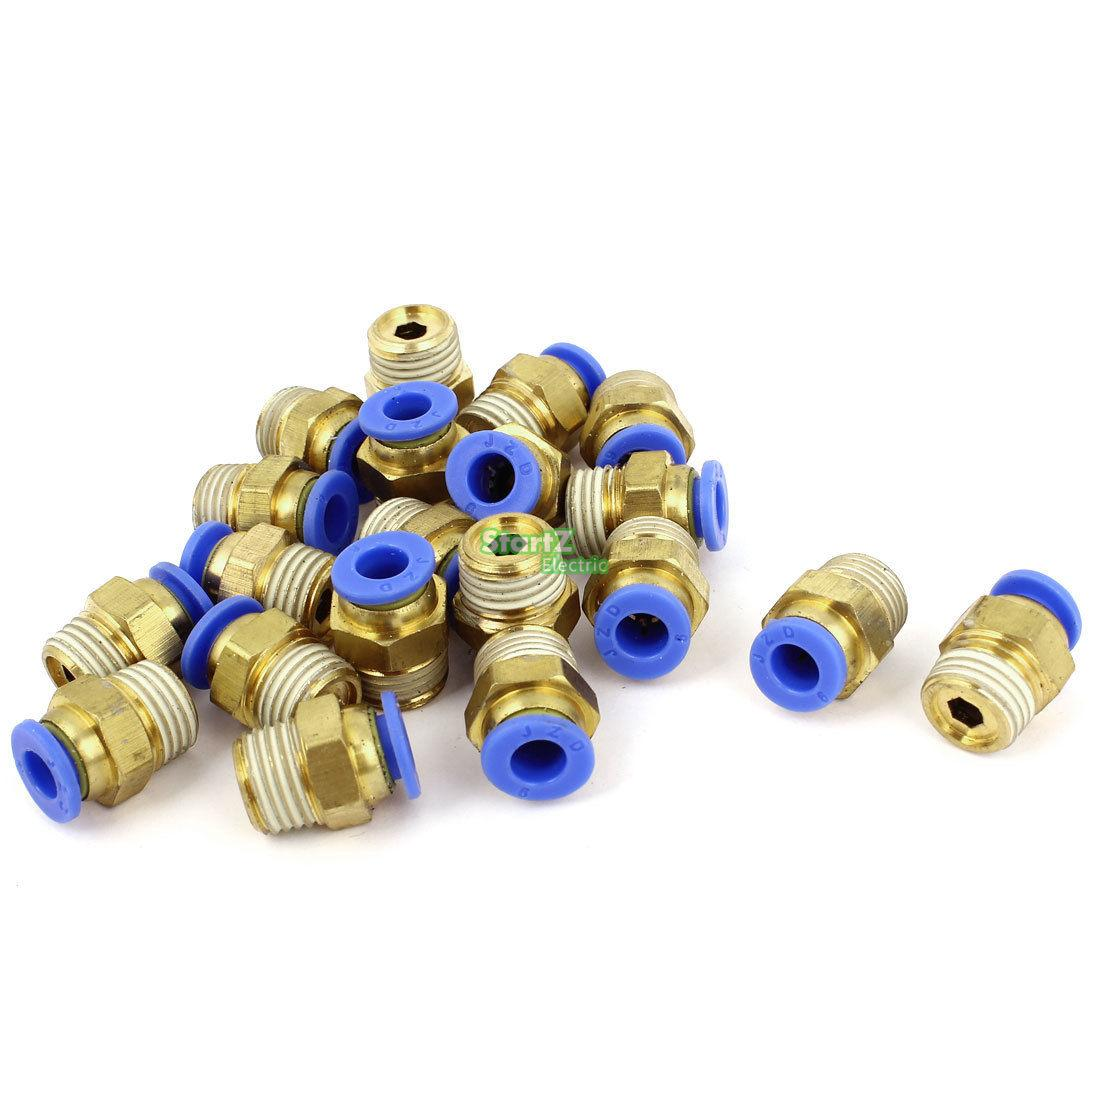 6mm Tube 1/4BSP Male Thread Quick Connector Pneumatic Air Fittings 20 Pcs tube size 12mm 1 4 pt thread pneumatic